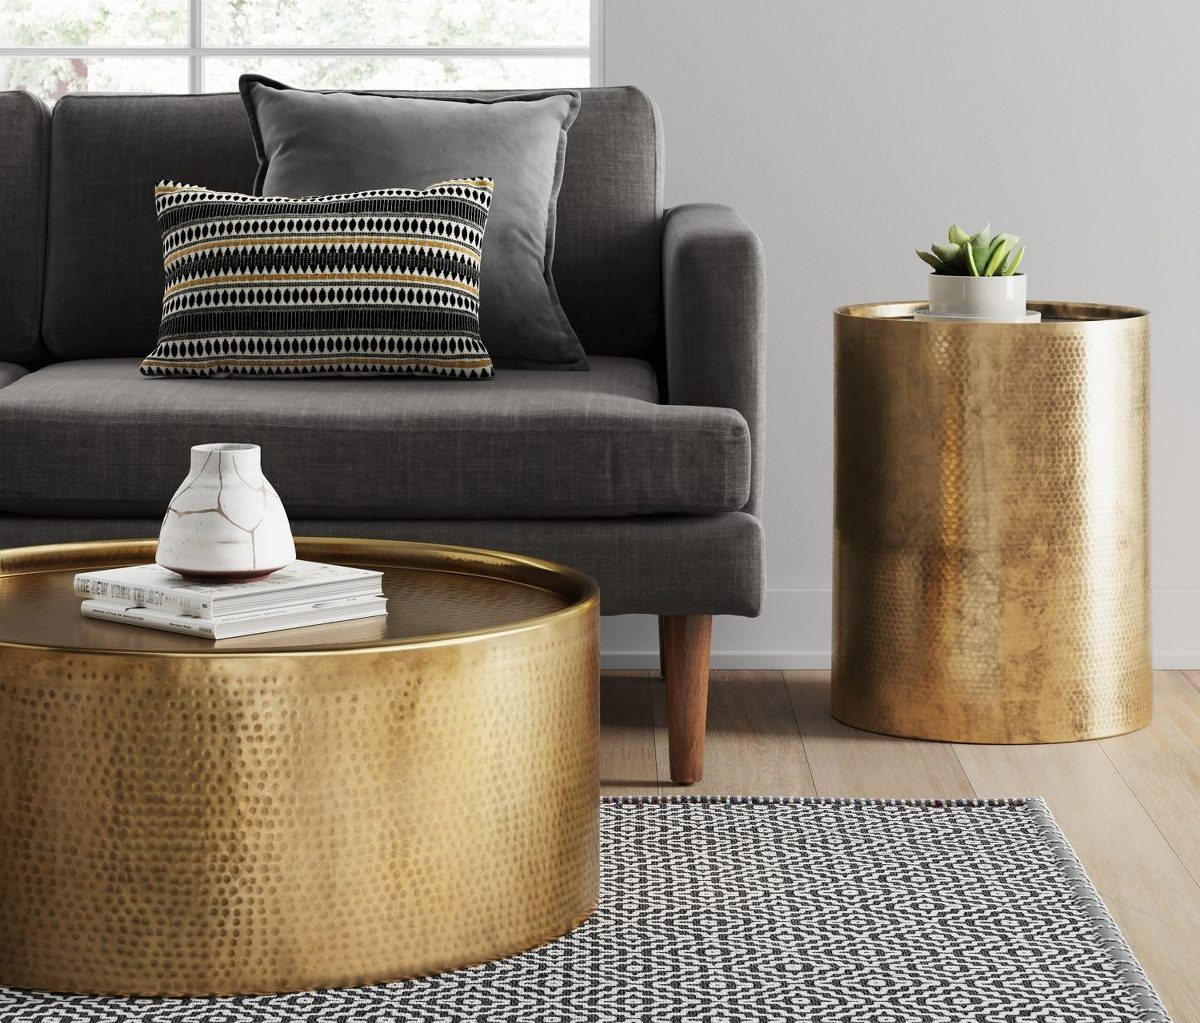 Quincy Basic Slipper Chair: Up To 40% Off Furniture At Target